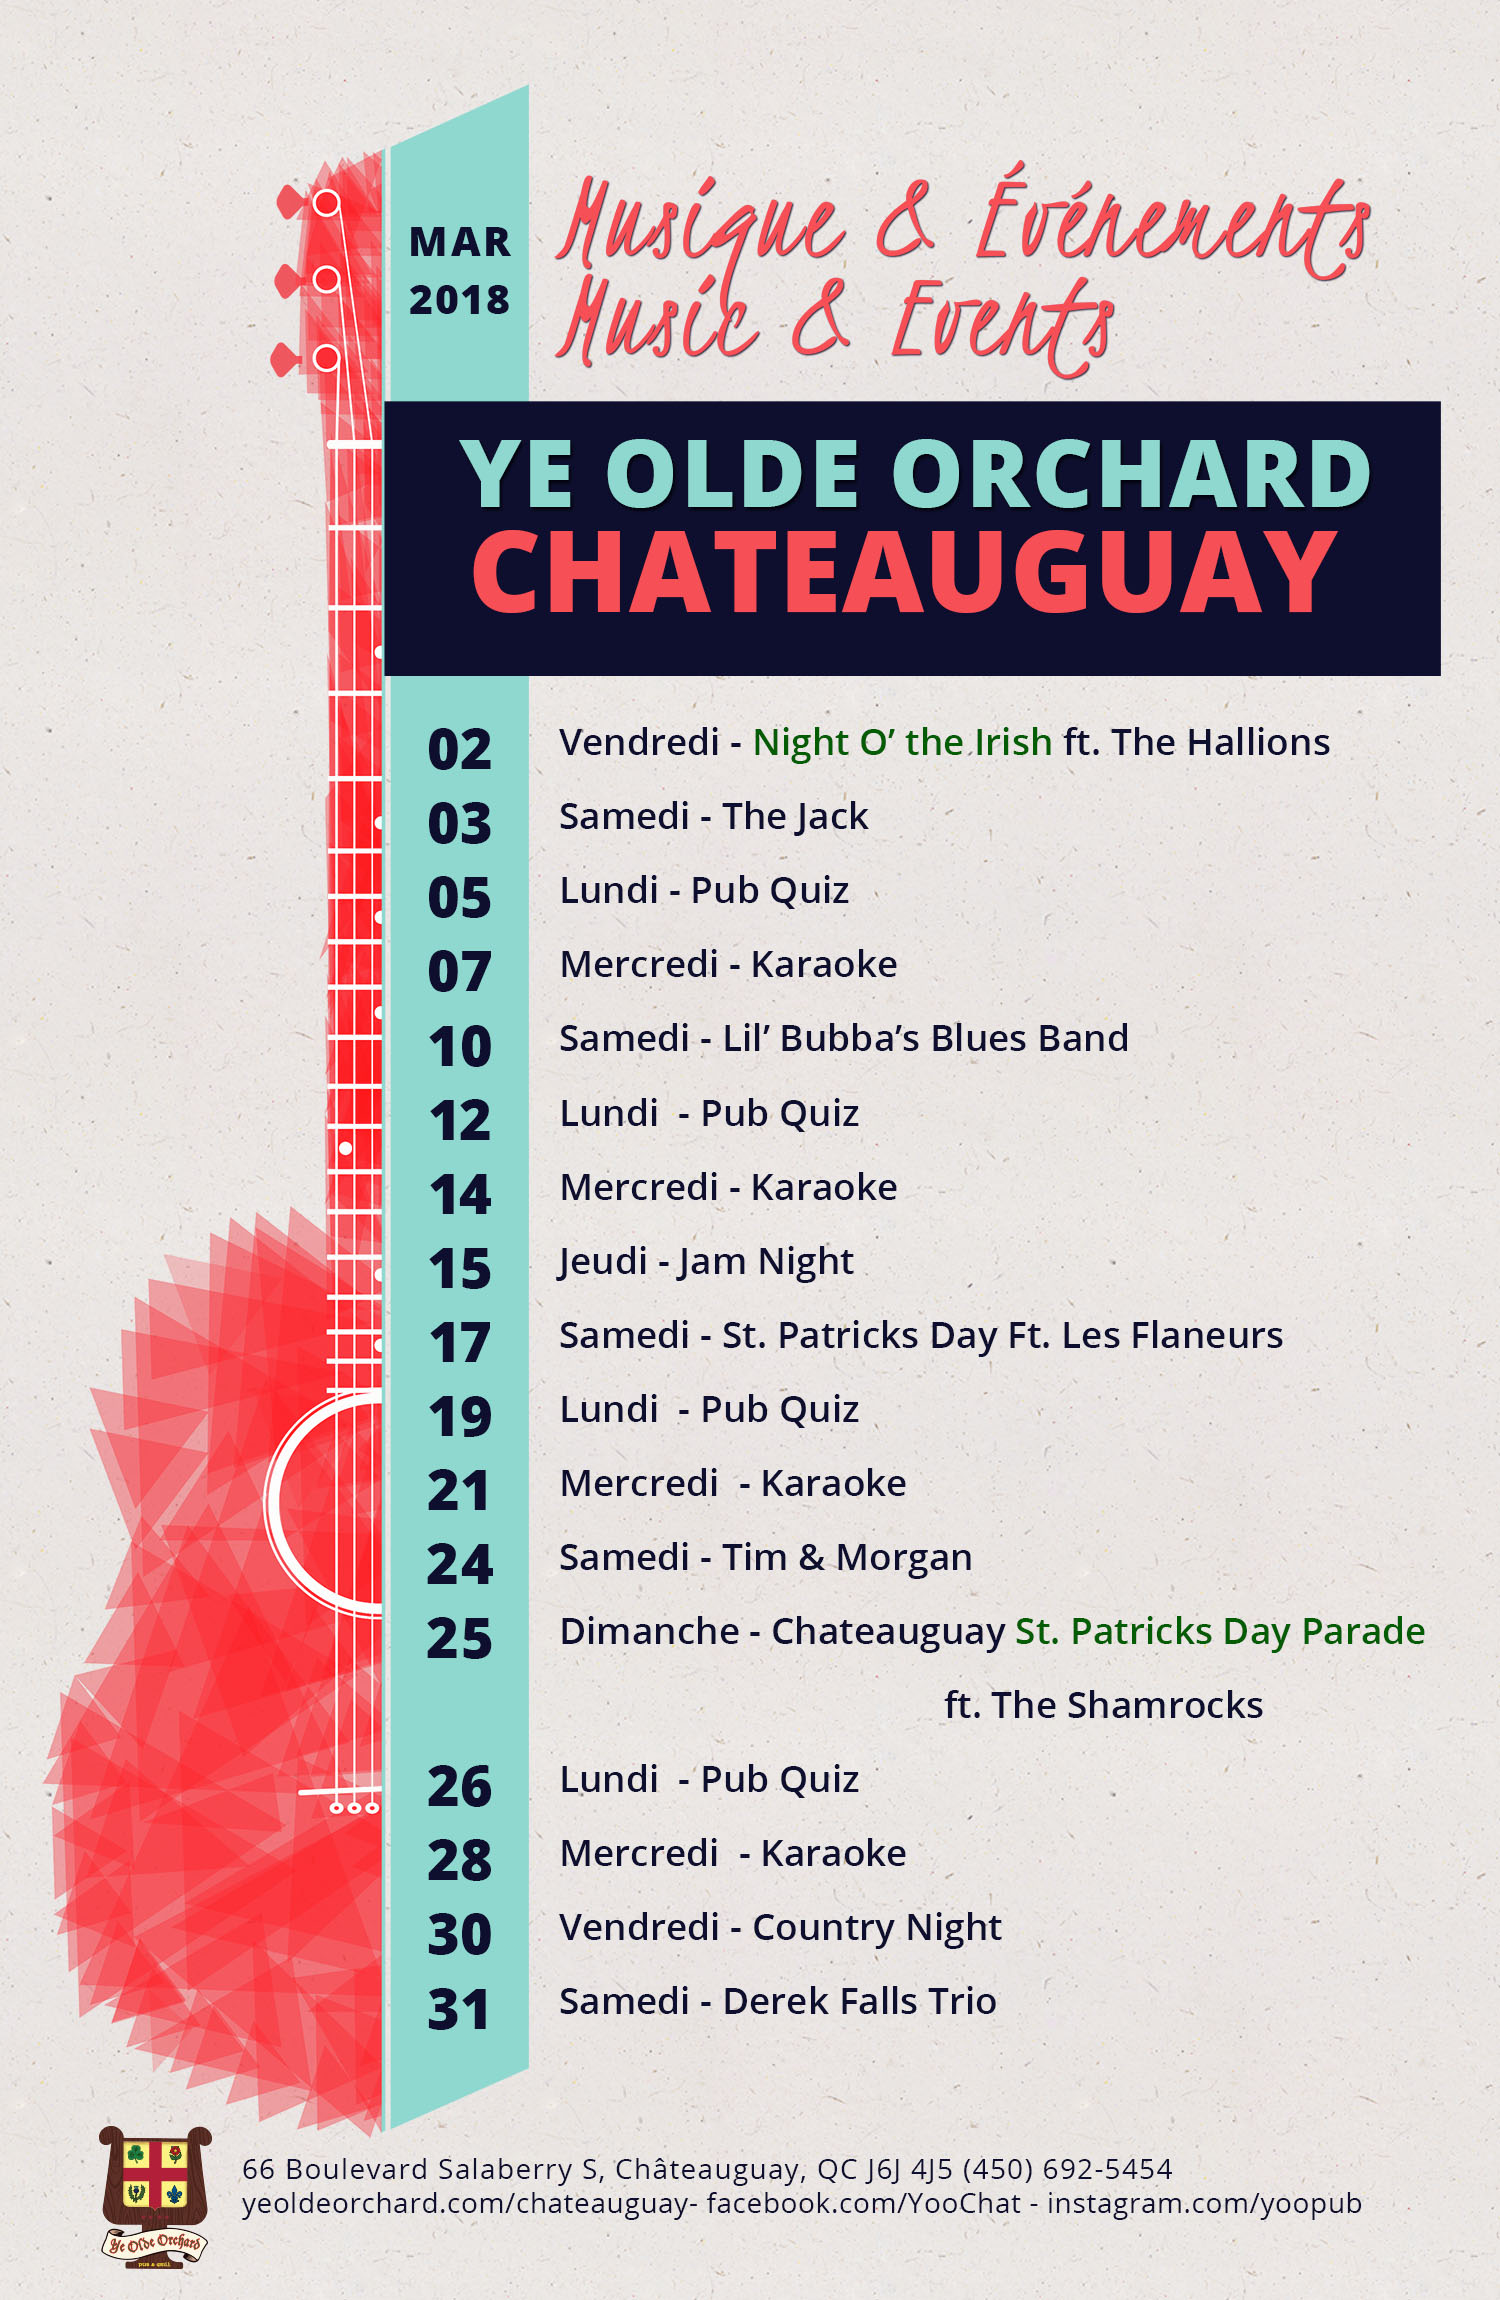 ye-olde-orchard-pub-music-and-events-calendar-Chateauguay-WEB-MARCH